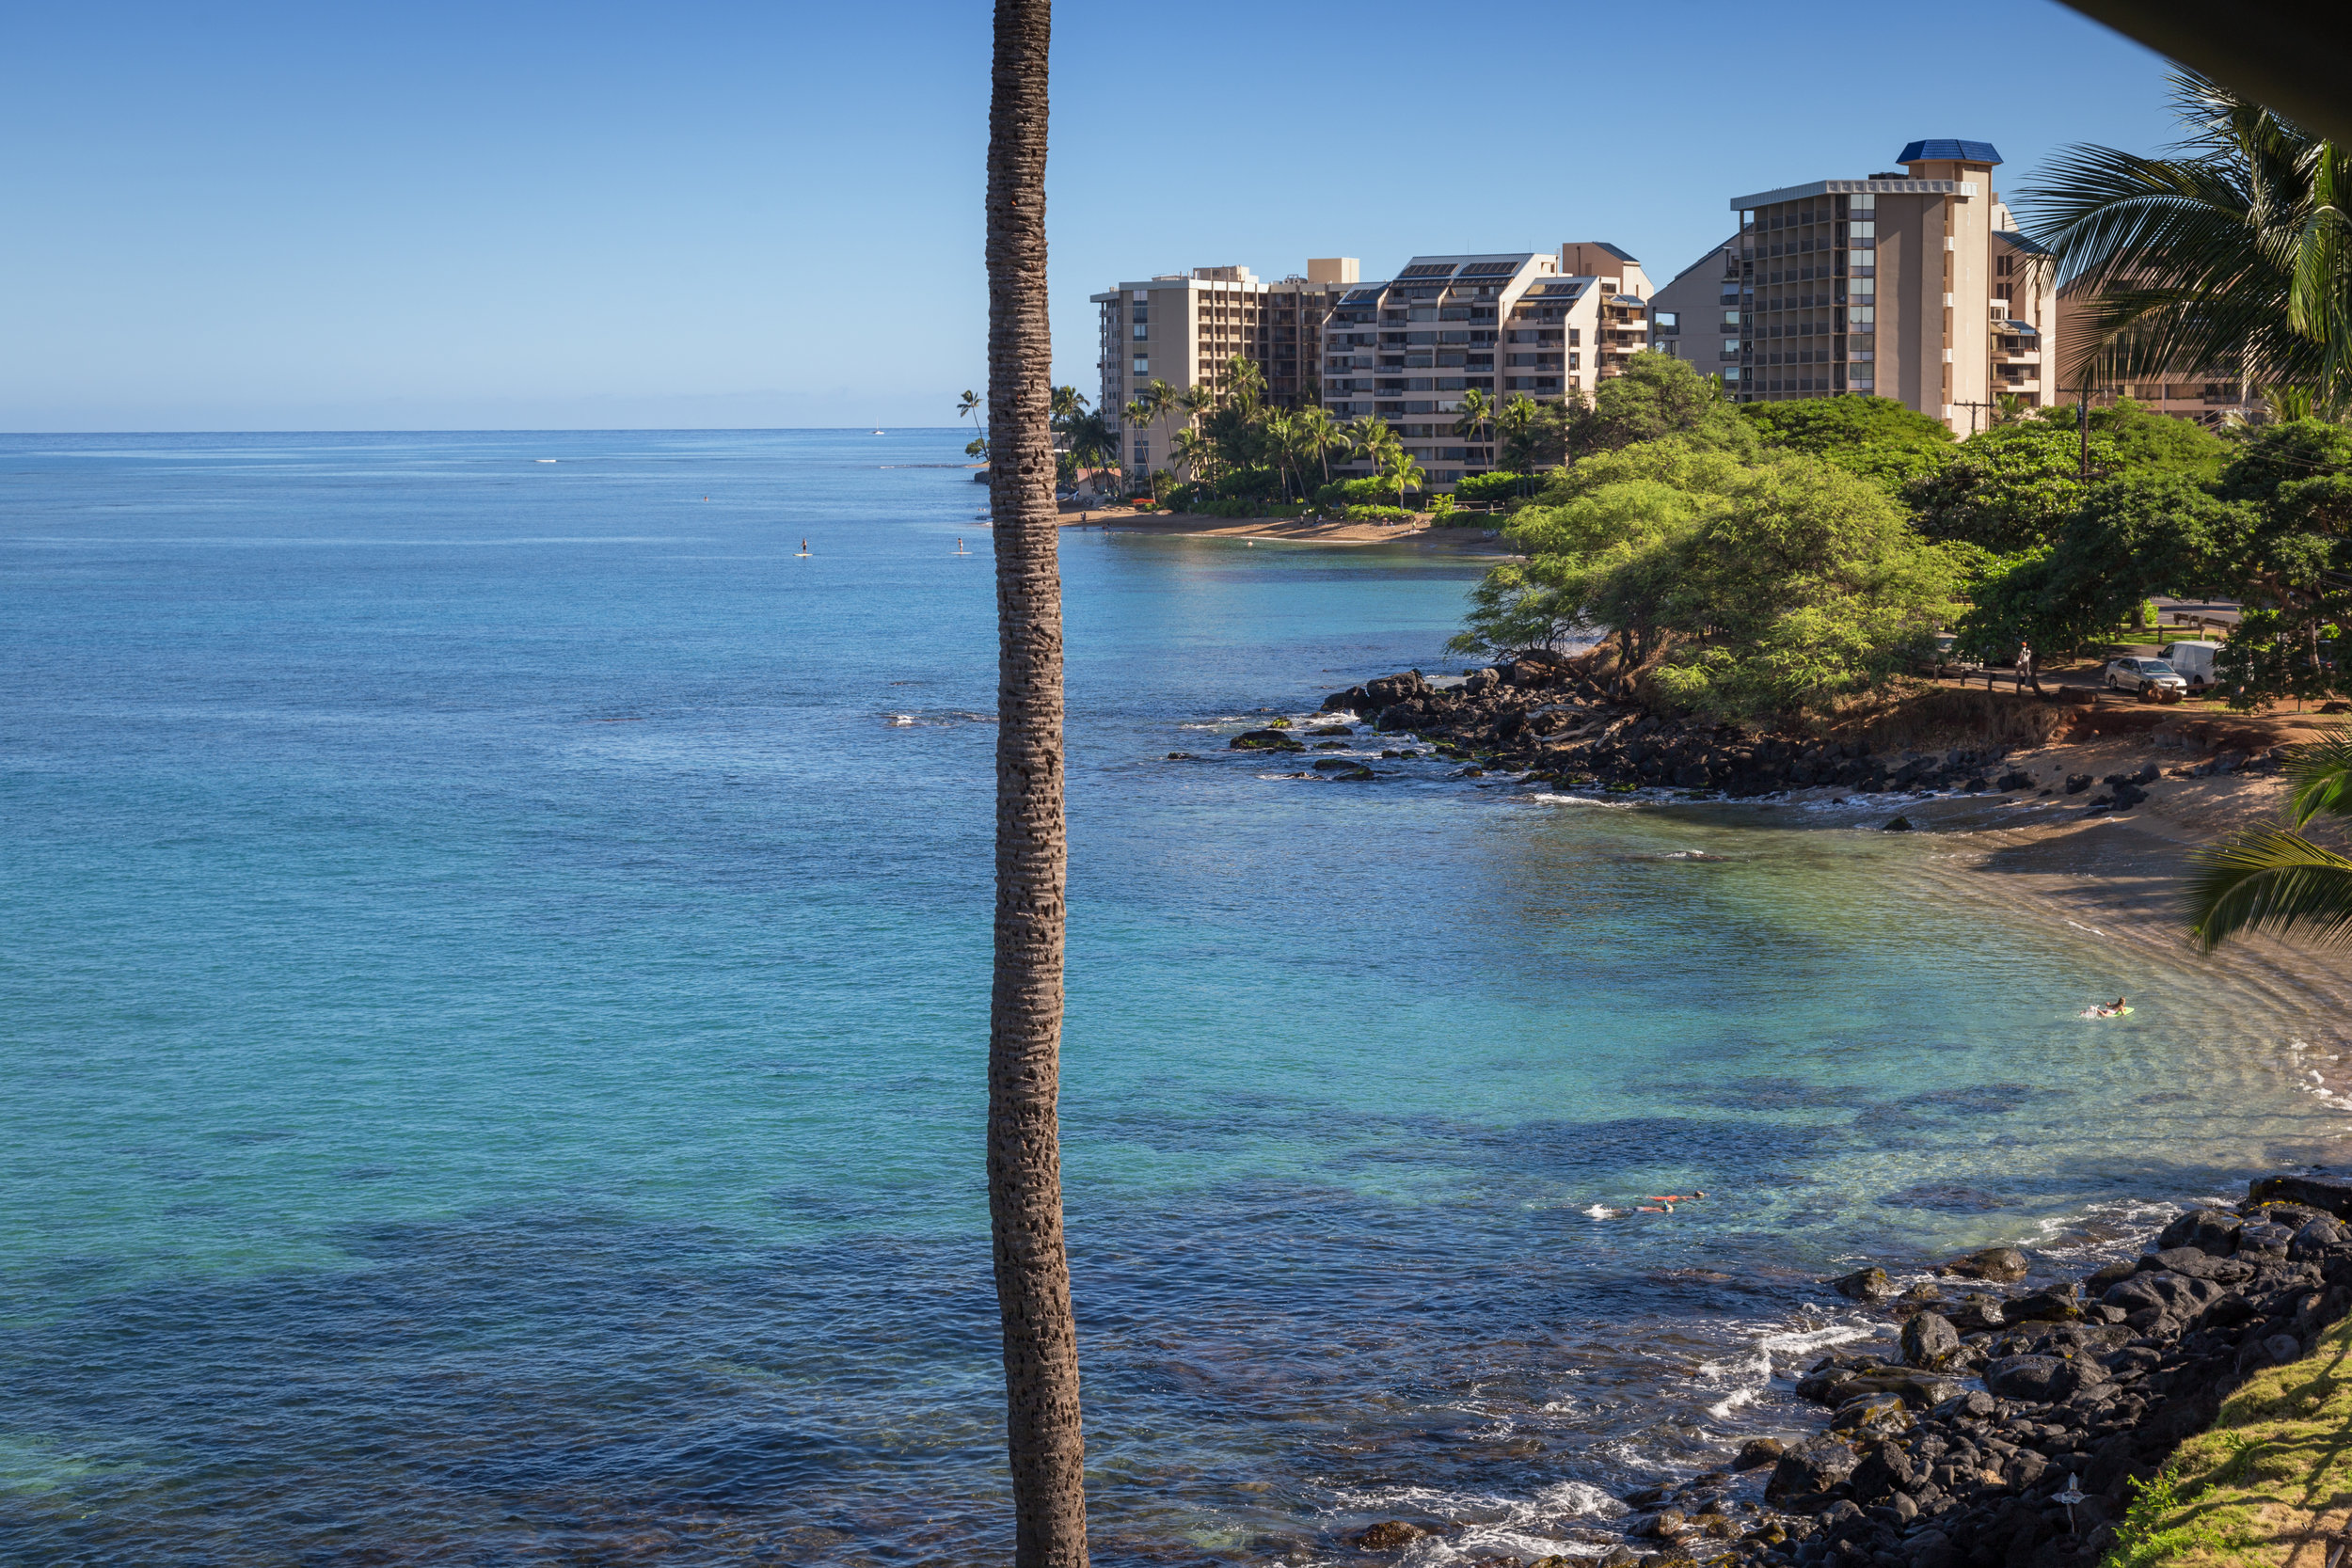 A little over a mile away, Pohaku Park is a charming beach cove that offers excellent snorkeling and good swimming.